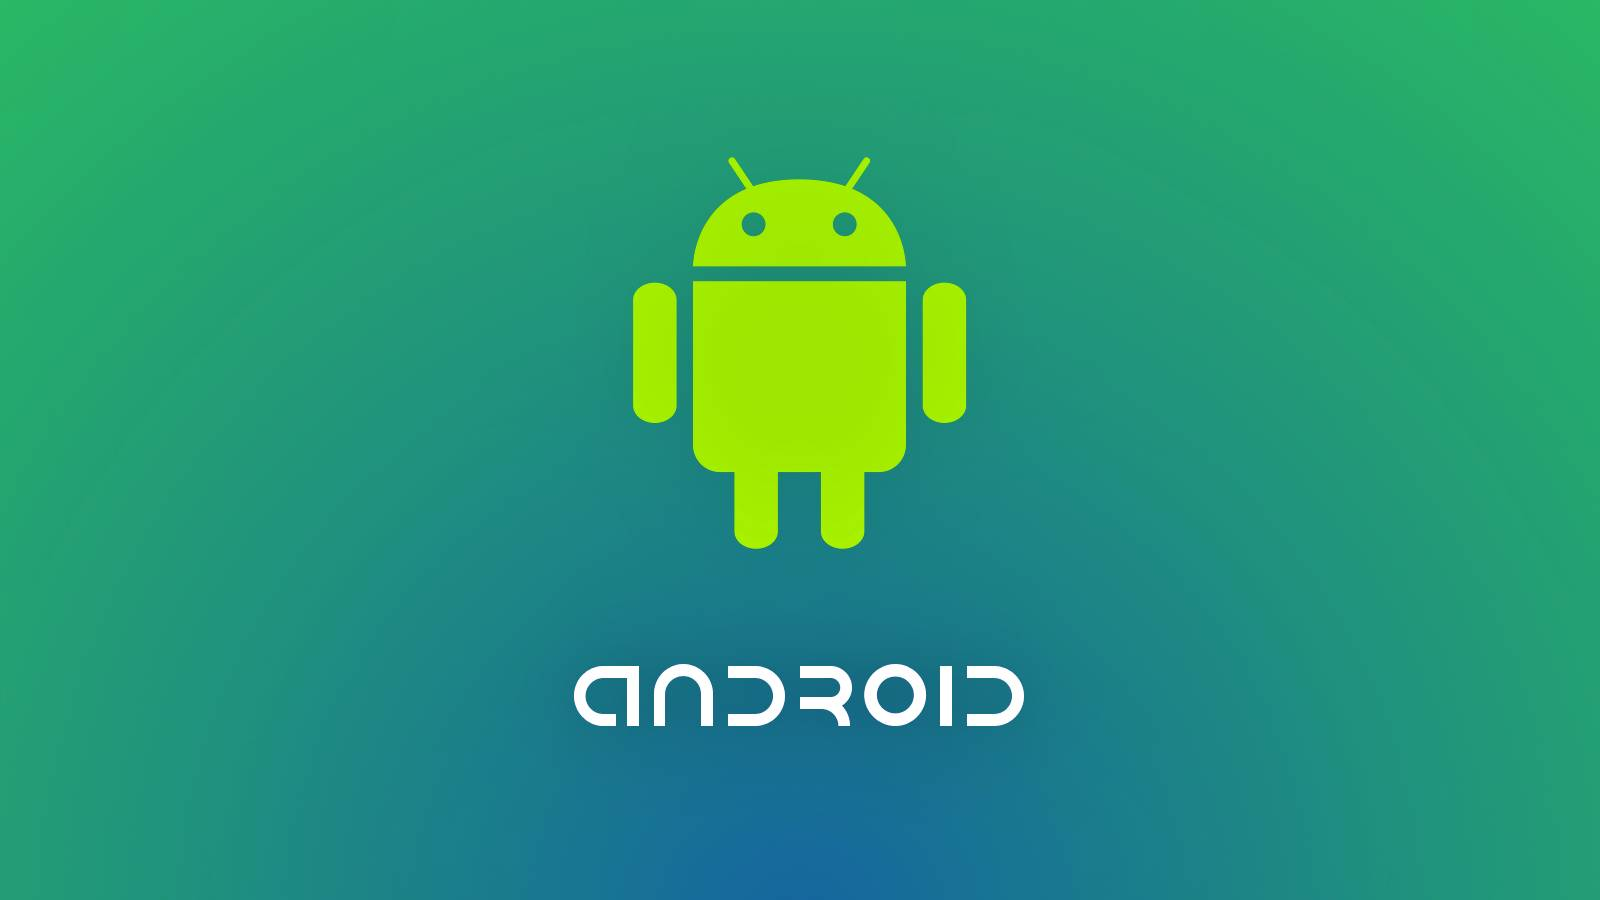 Android tematic